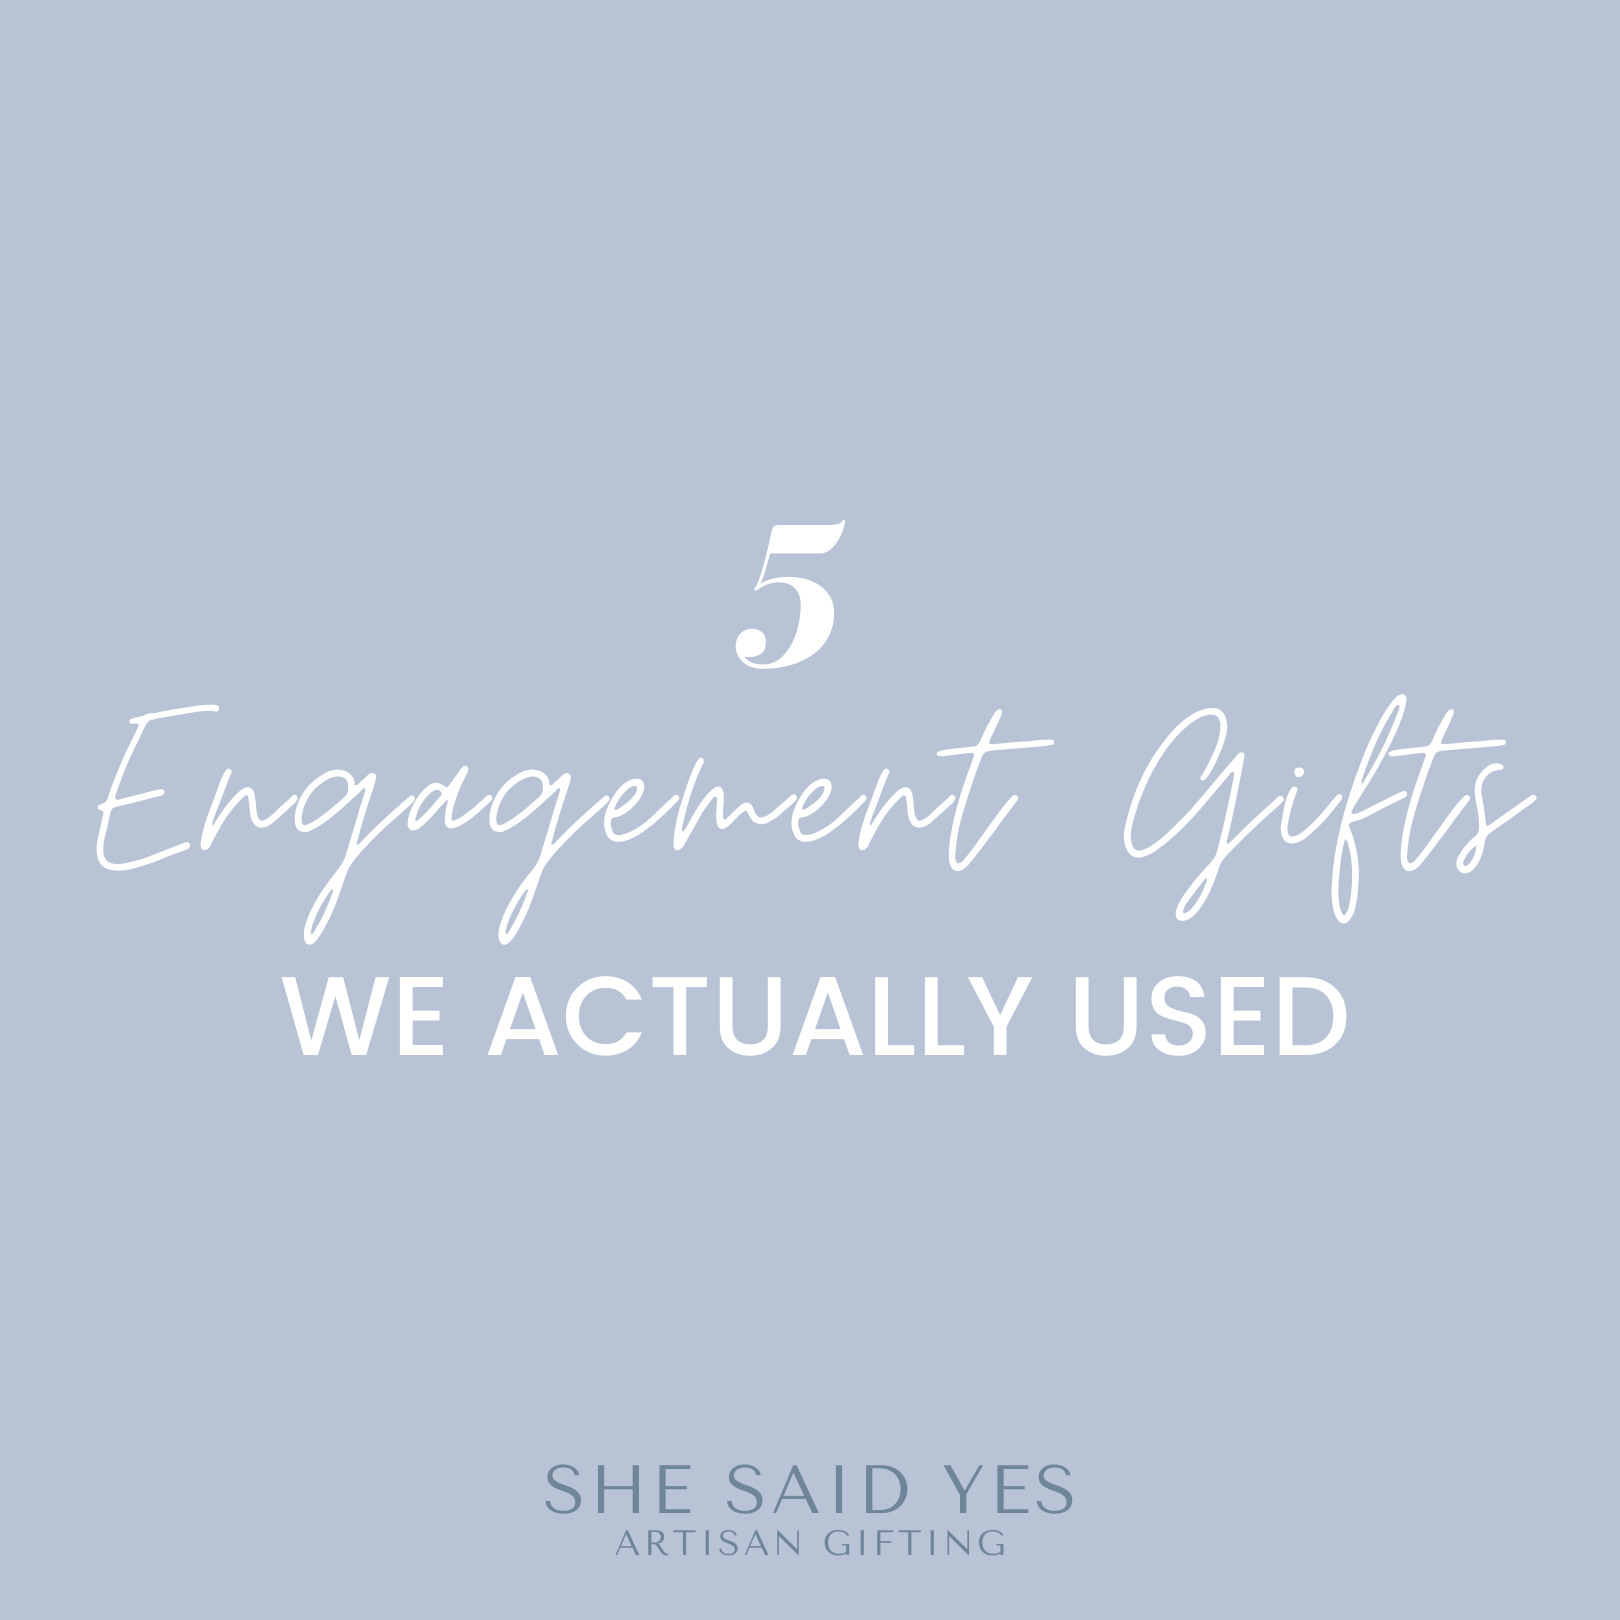 5 Engagement Gifts We Actually Used